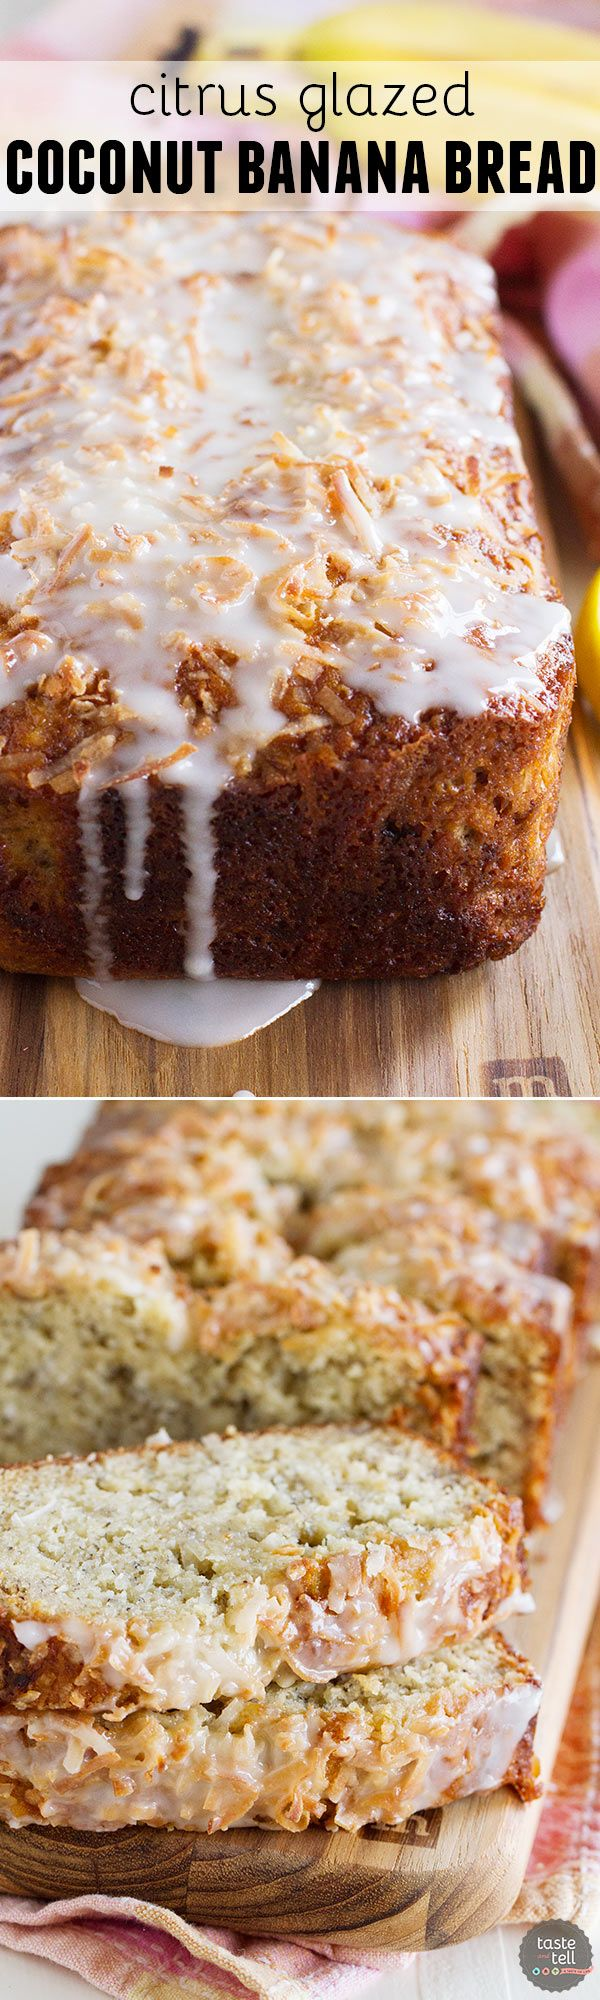 My FAVORITE Recipes: Citrus Glazed Coconut Banana Bread - Taste and Tel...